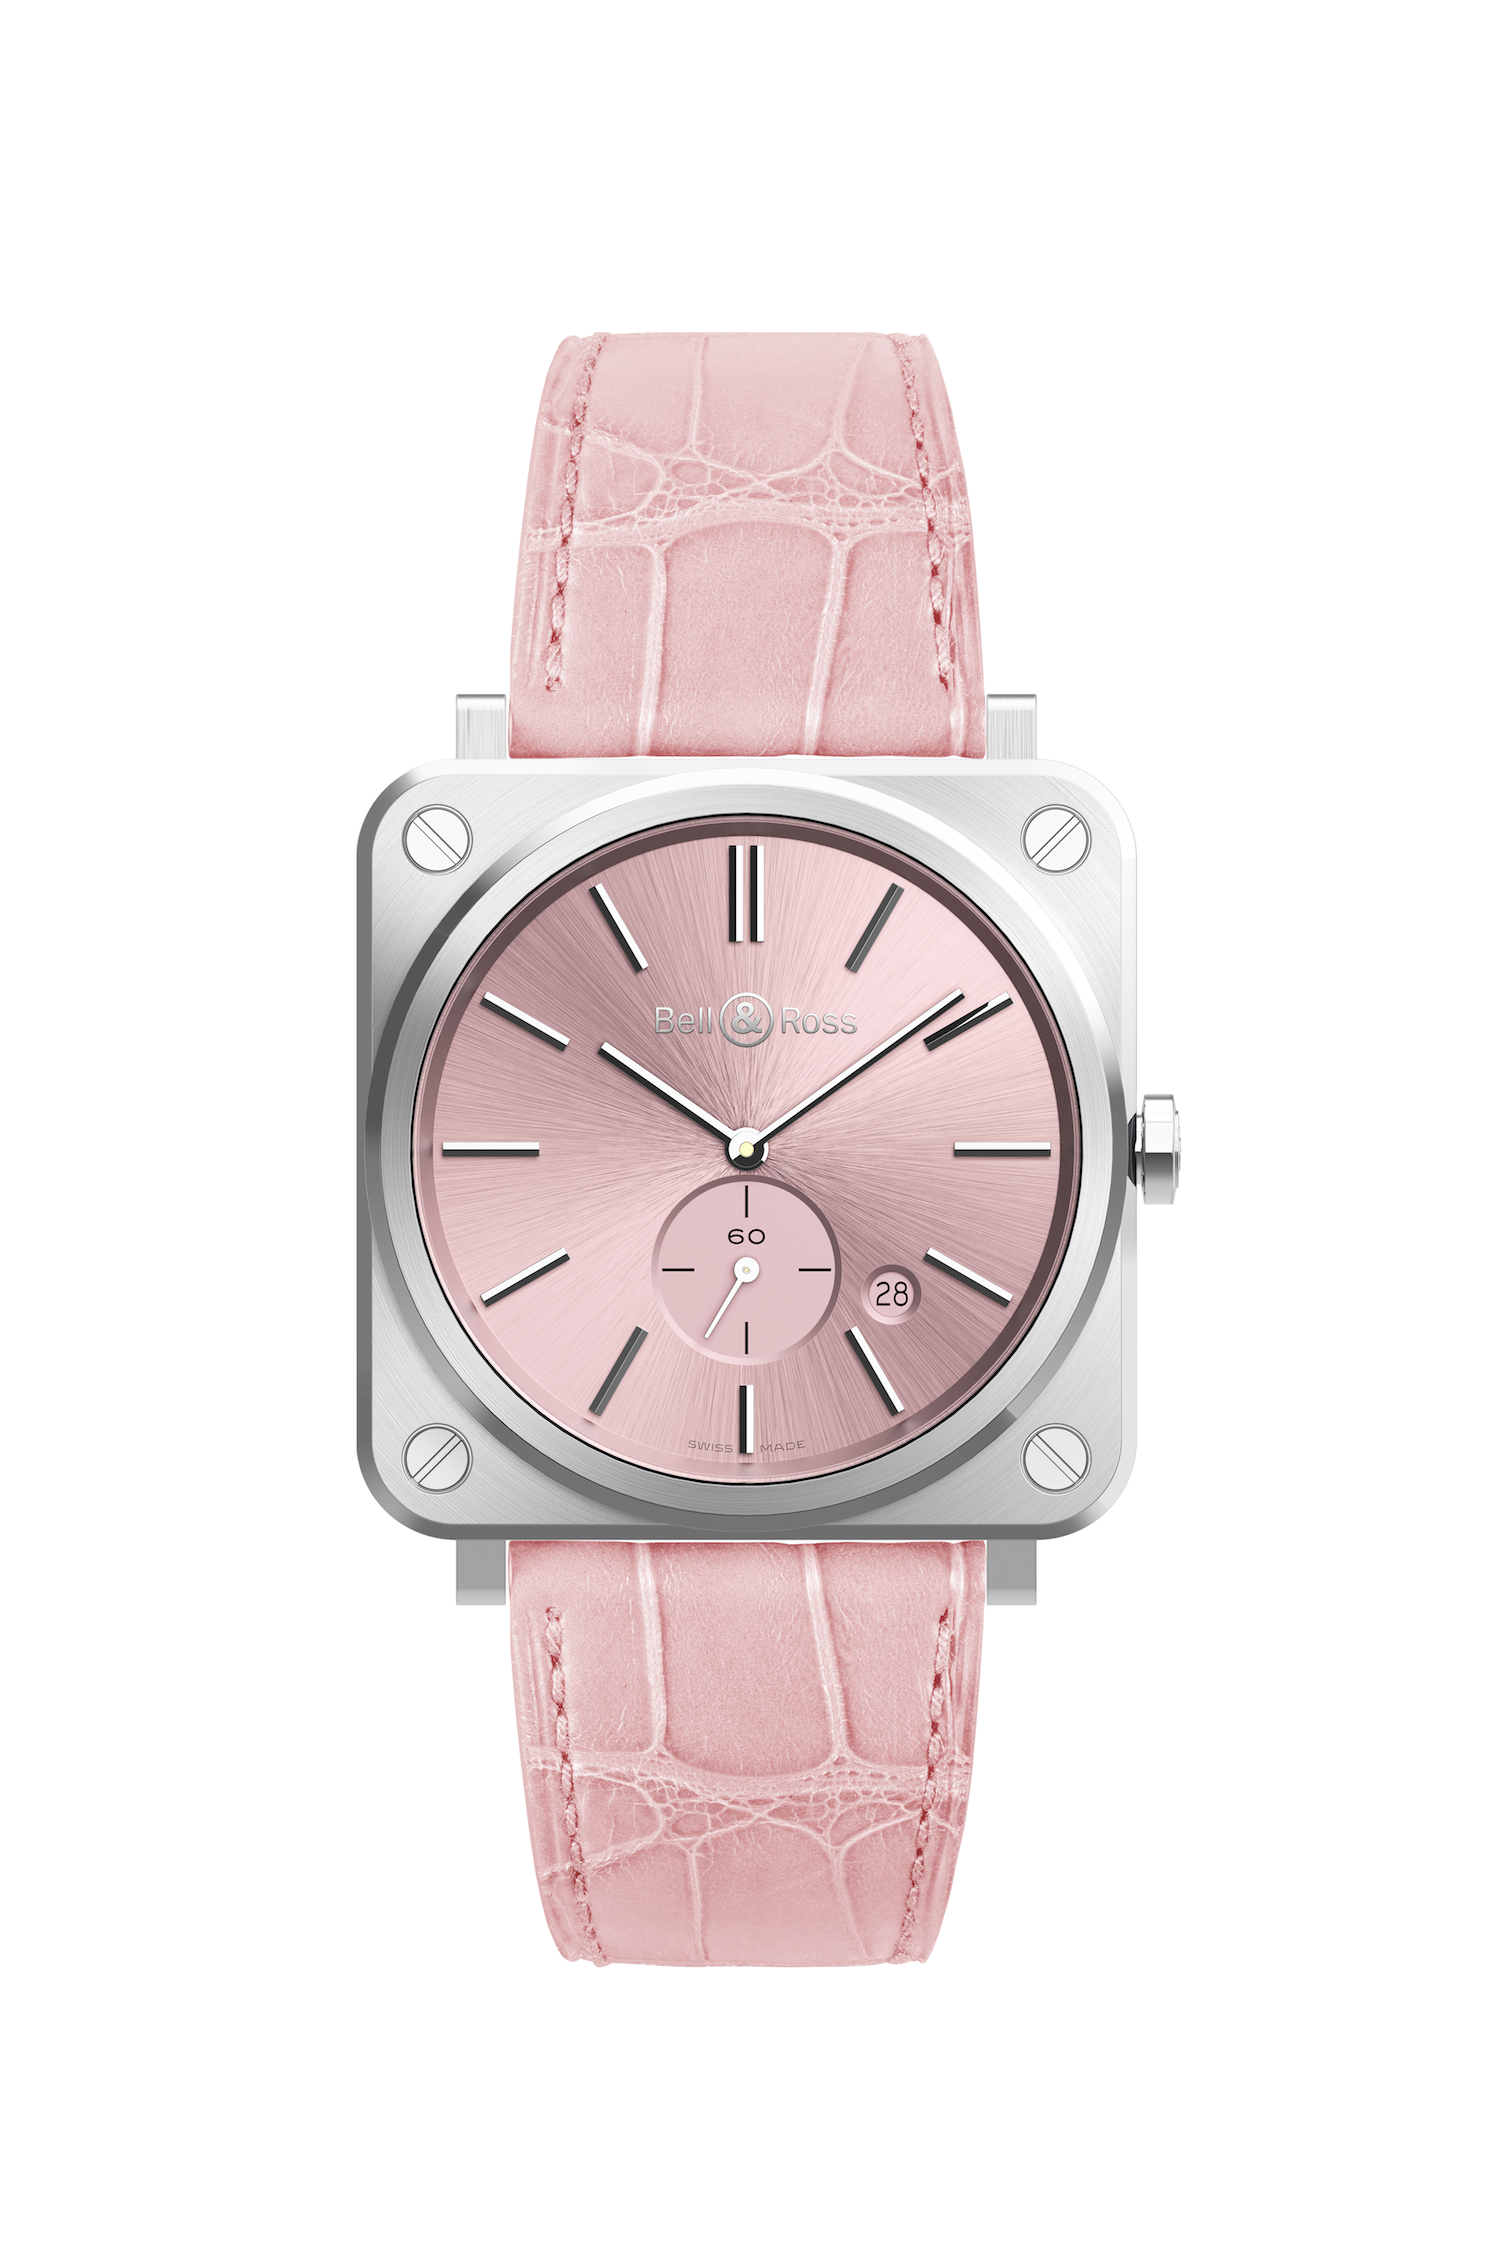 "<p>The combination of the masculine square face with a pink dial and strap on this Bell &amp&#x3B; Ross BRS Novarosa means it can be worn to Saturday brunch just as easily as to a black-tie gala. The 39mm watch is powered by&nbsp&#x3B;a quartz (battery) movement and features a clean time and date display.<br></p><p><em data-redactor-tag=""em"" data-verified=""redactor"">Bell &amp&#x3B; Ross BRS Novarosa, $2,400&#x3B; <a href=""https://www.bellross.com/"" target=""_blank"" data-tracking-id=""recirc-text-link"">bellross.com</a> (available July 2017)</em></p>"